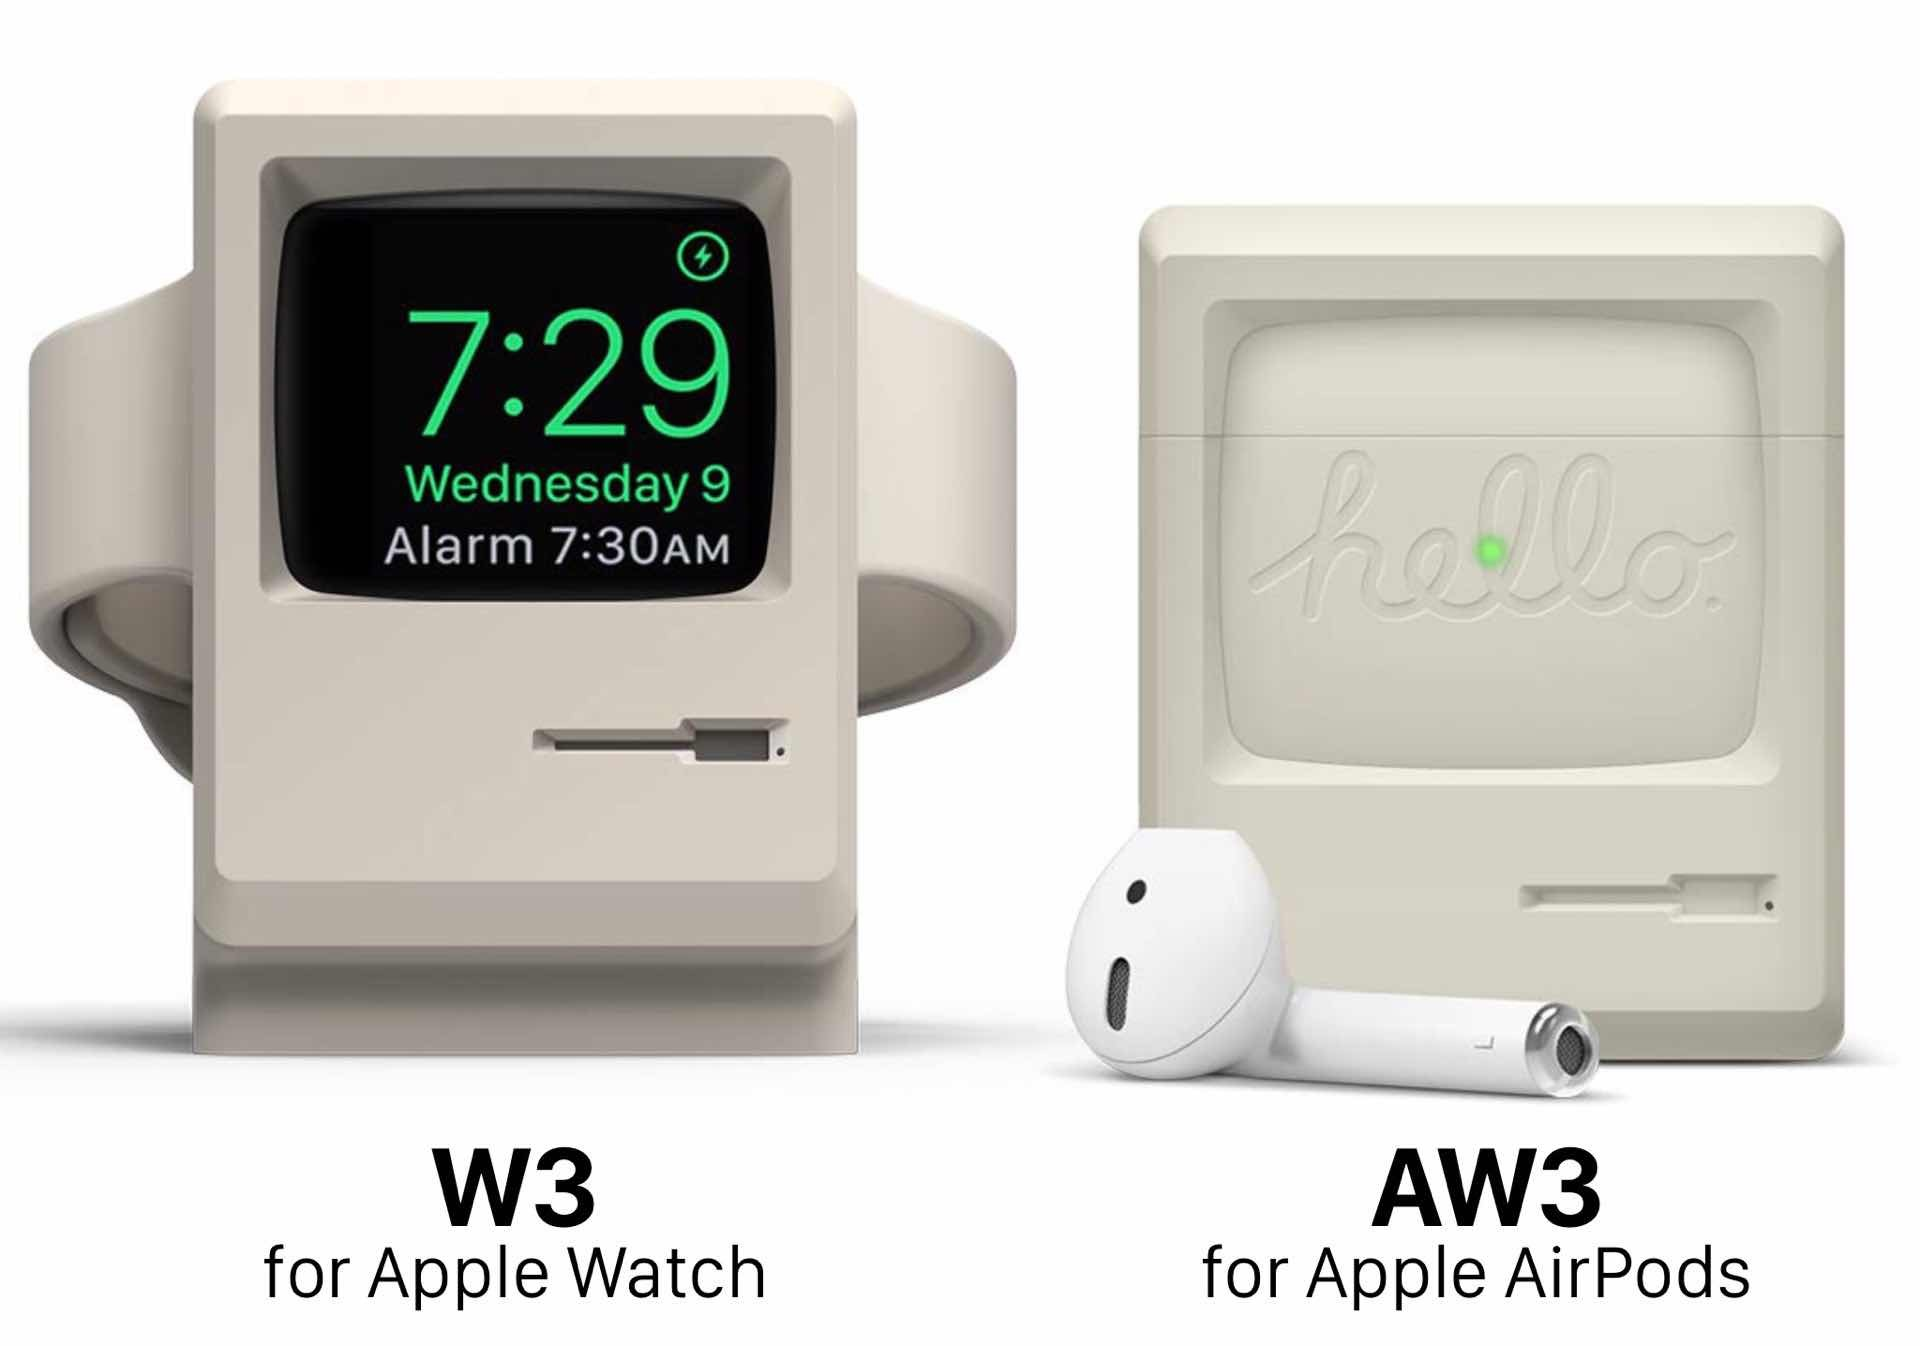 elago-aw3-case-for-apple-airpods-w3-apple-watch-comparison